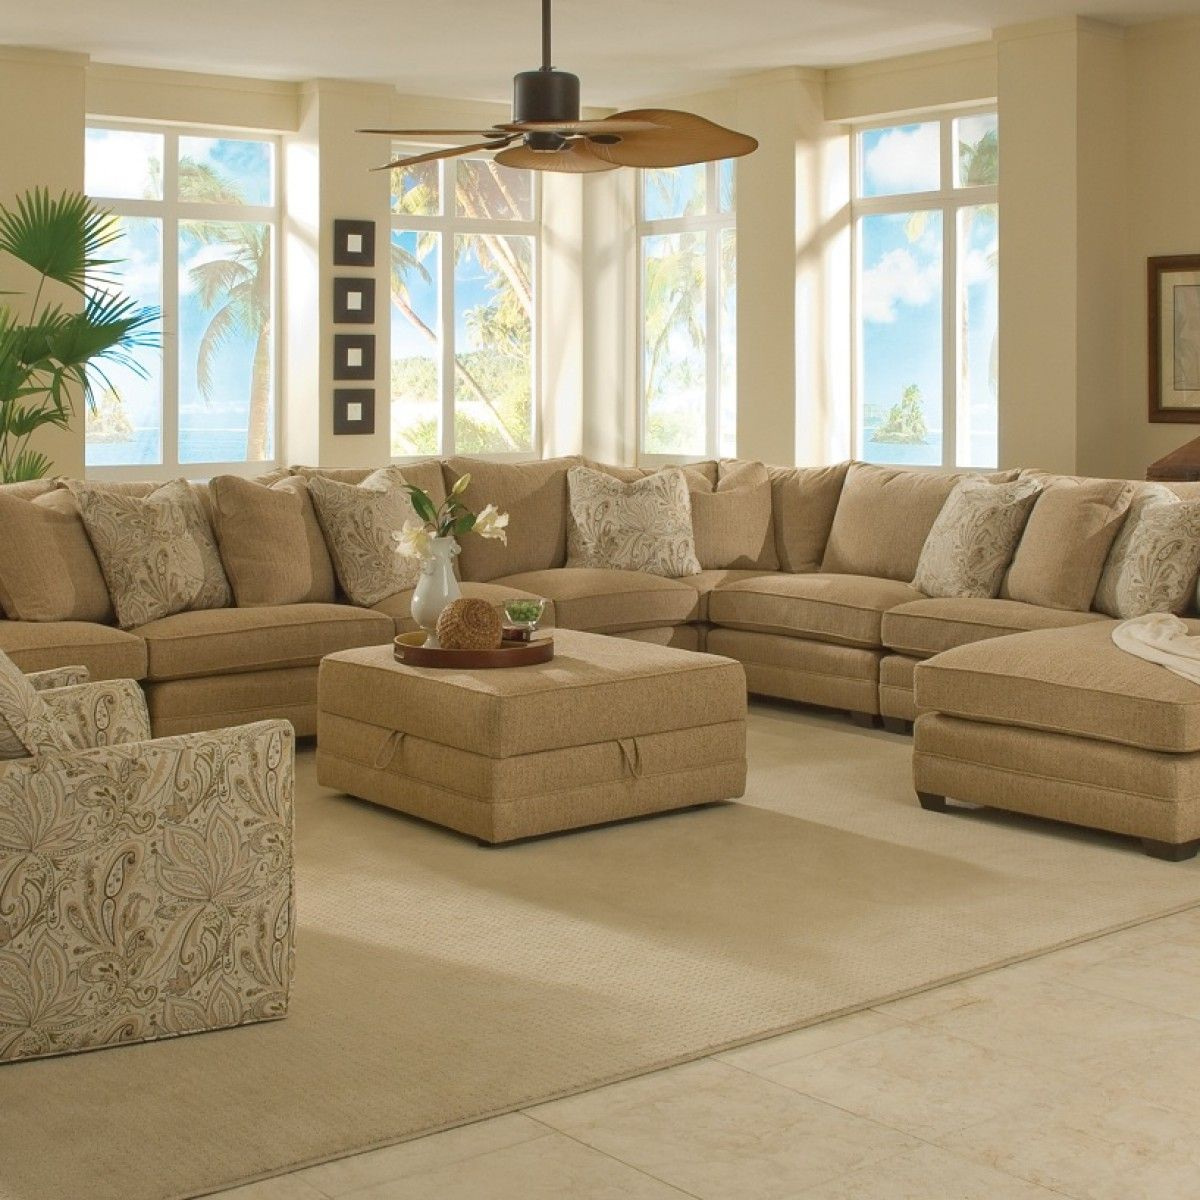 Magnificent large sectional sofas family room for Design ideas for large living rooms